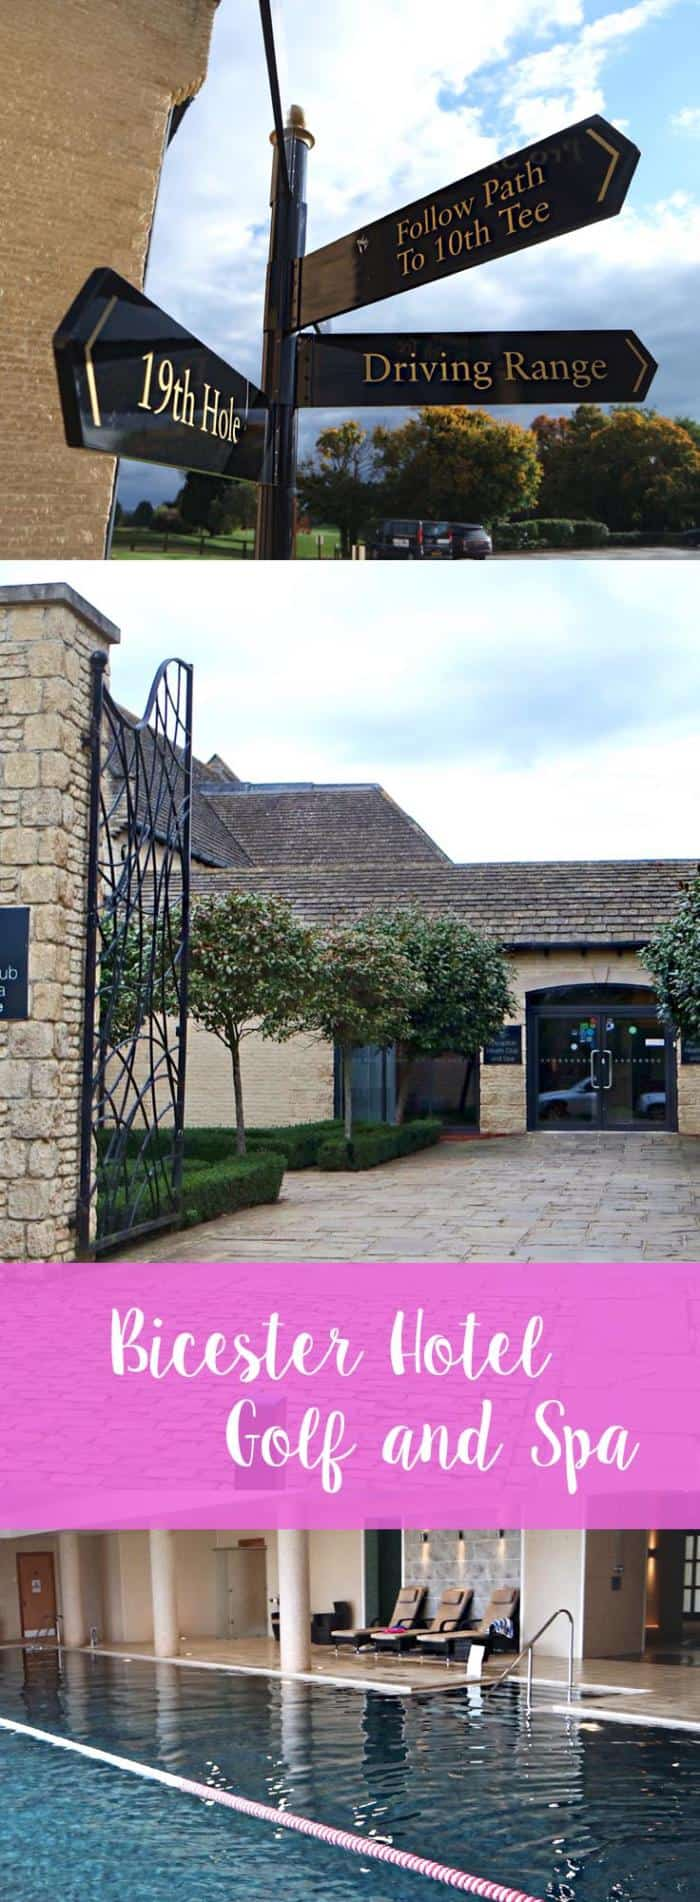 A Spa Day at Bicester Hotel Golf and Spa, Oxfordshire